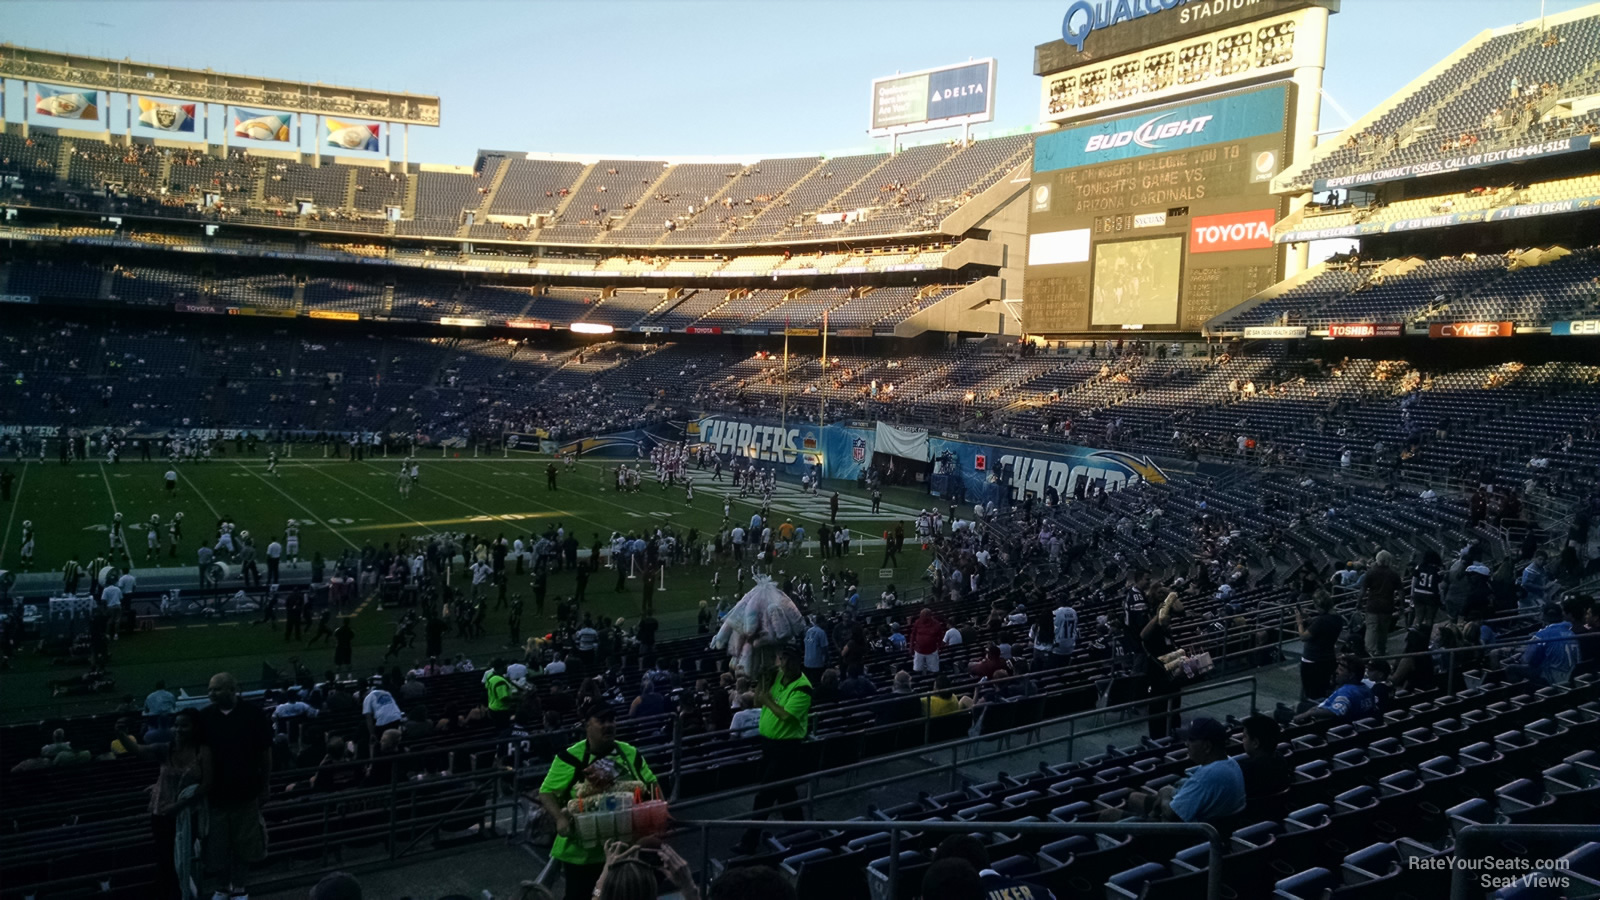 Sdccu Stadium Plaza 37 Rateyourseats Com